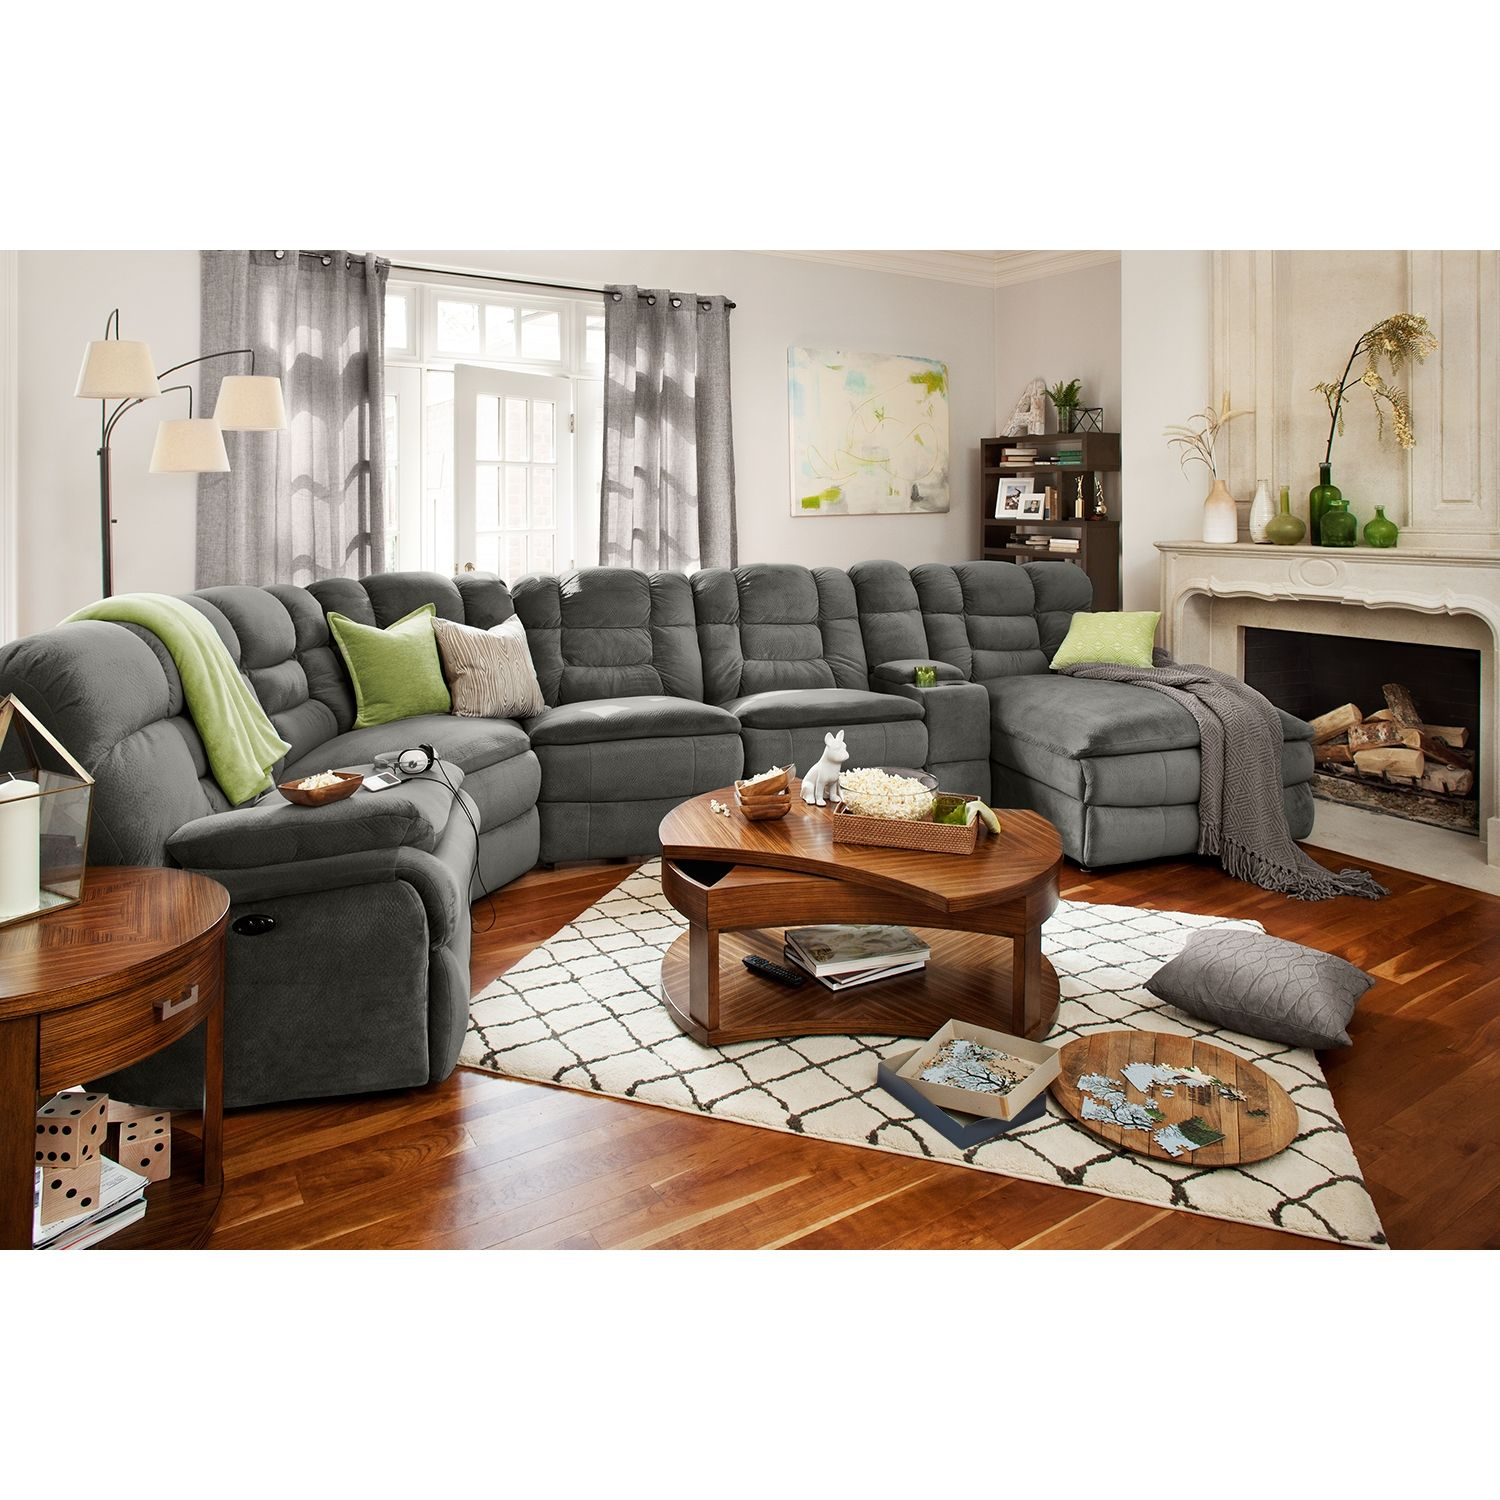 Best Big Softie 6 Piece Power Reclining Sectional With Chaise 400 x 300